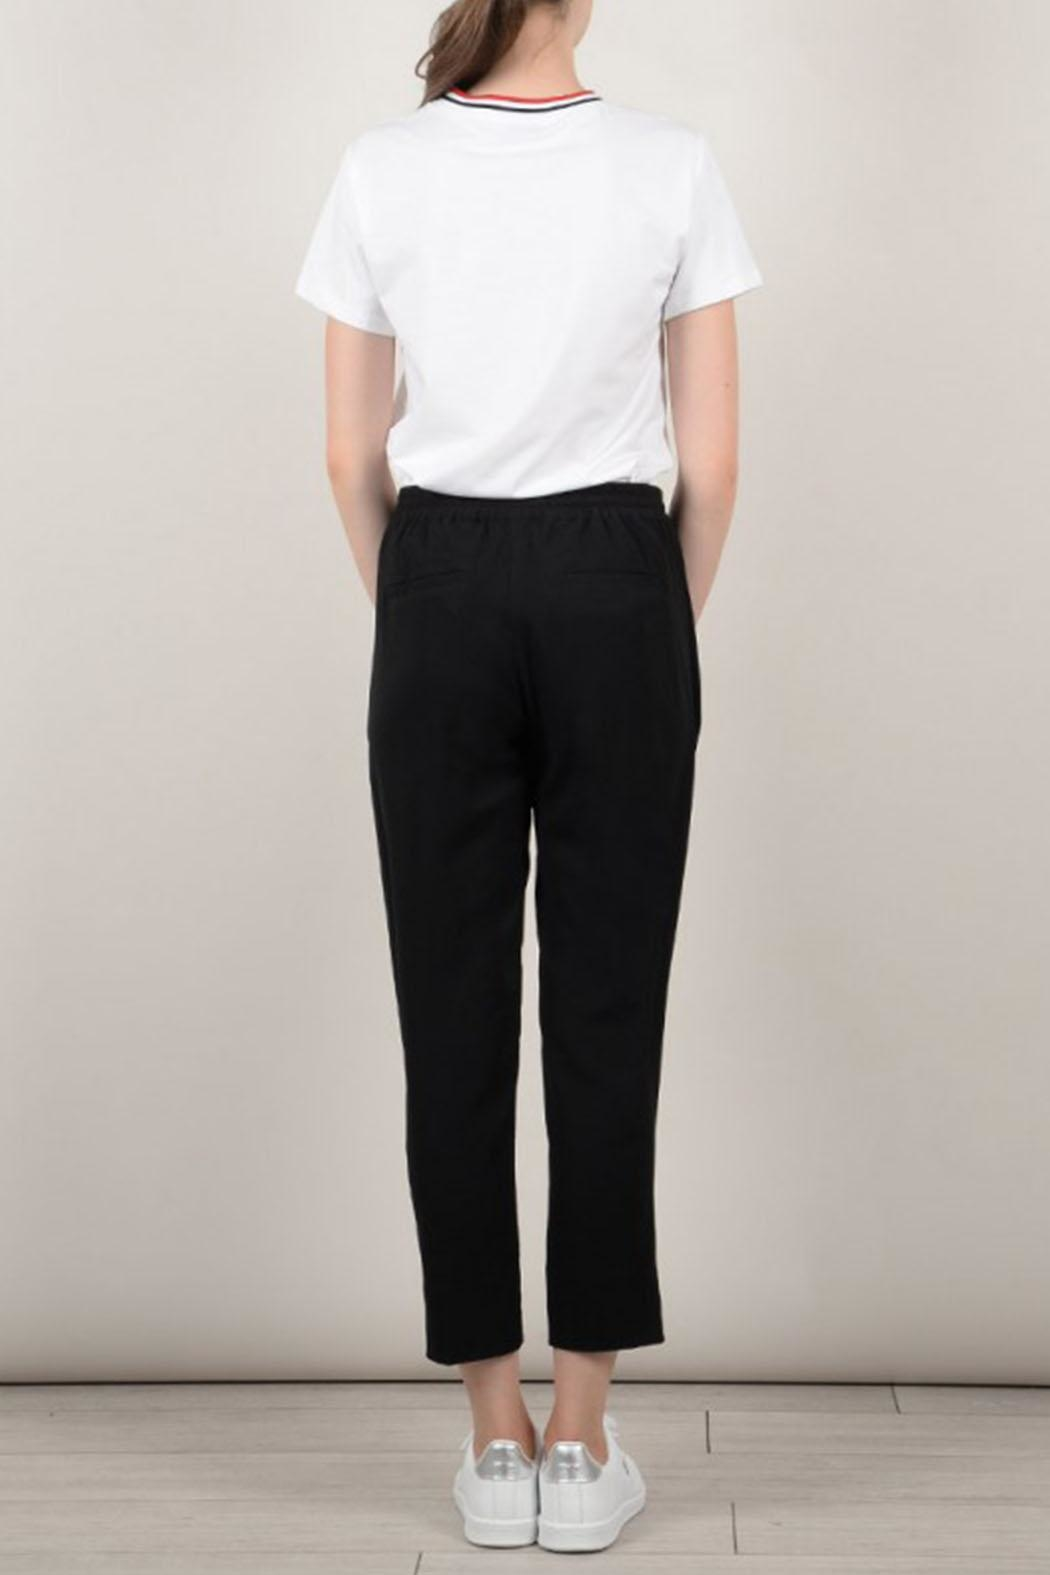 Molly Bracken Black Pants - Front Full Image